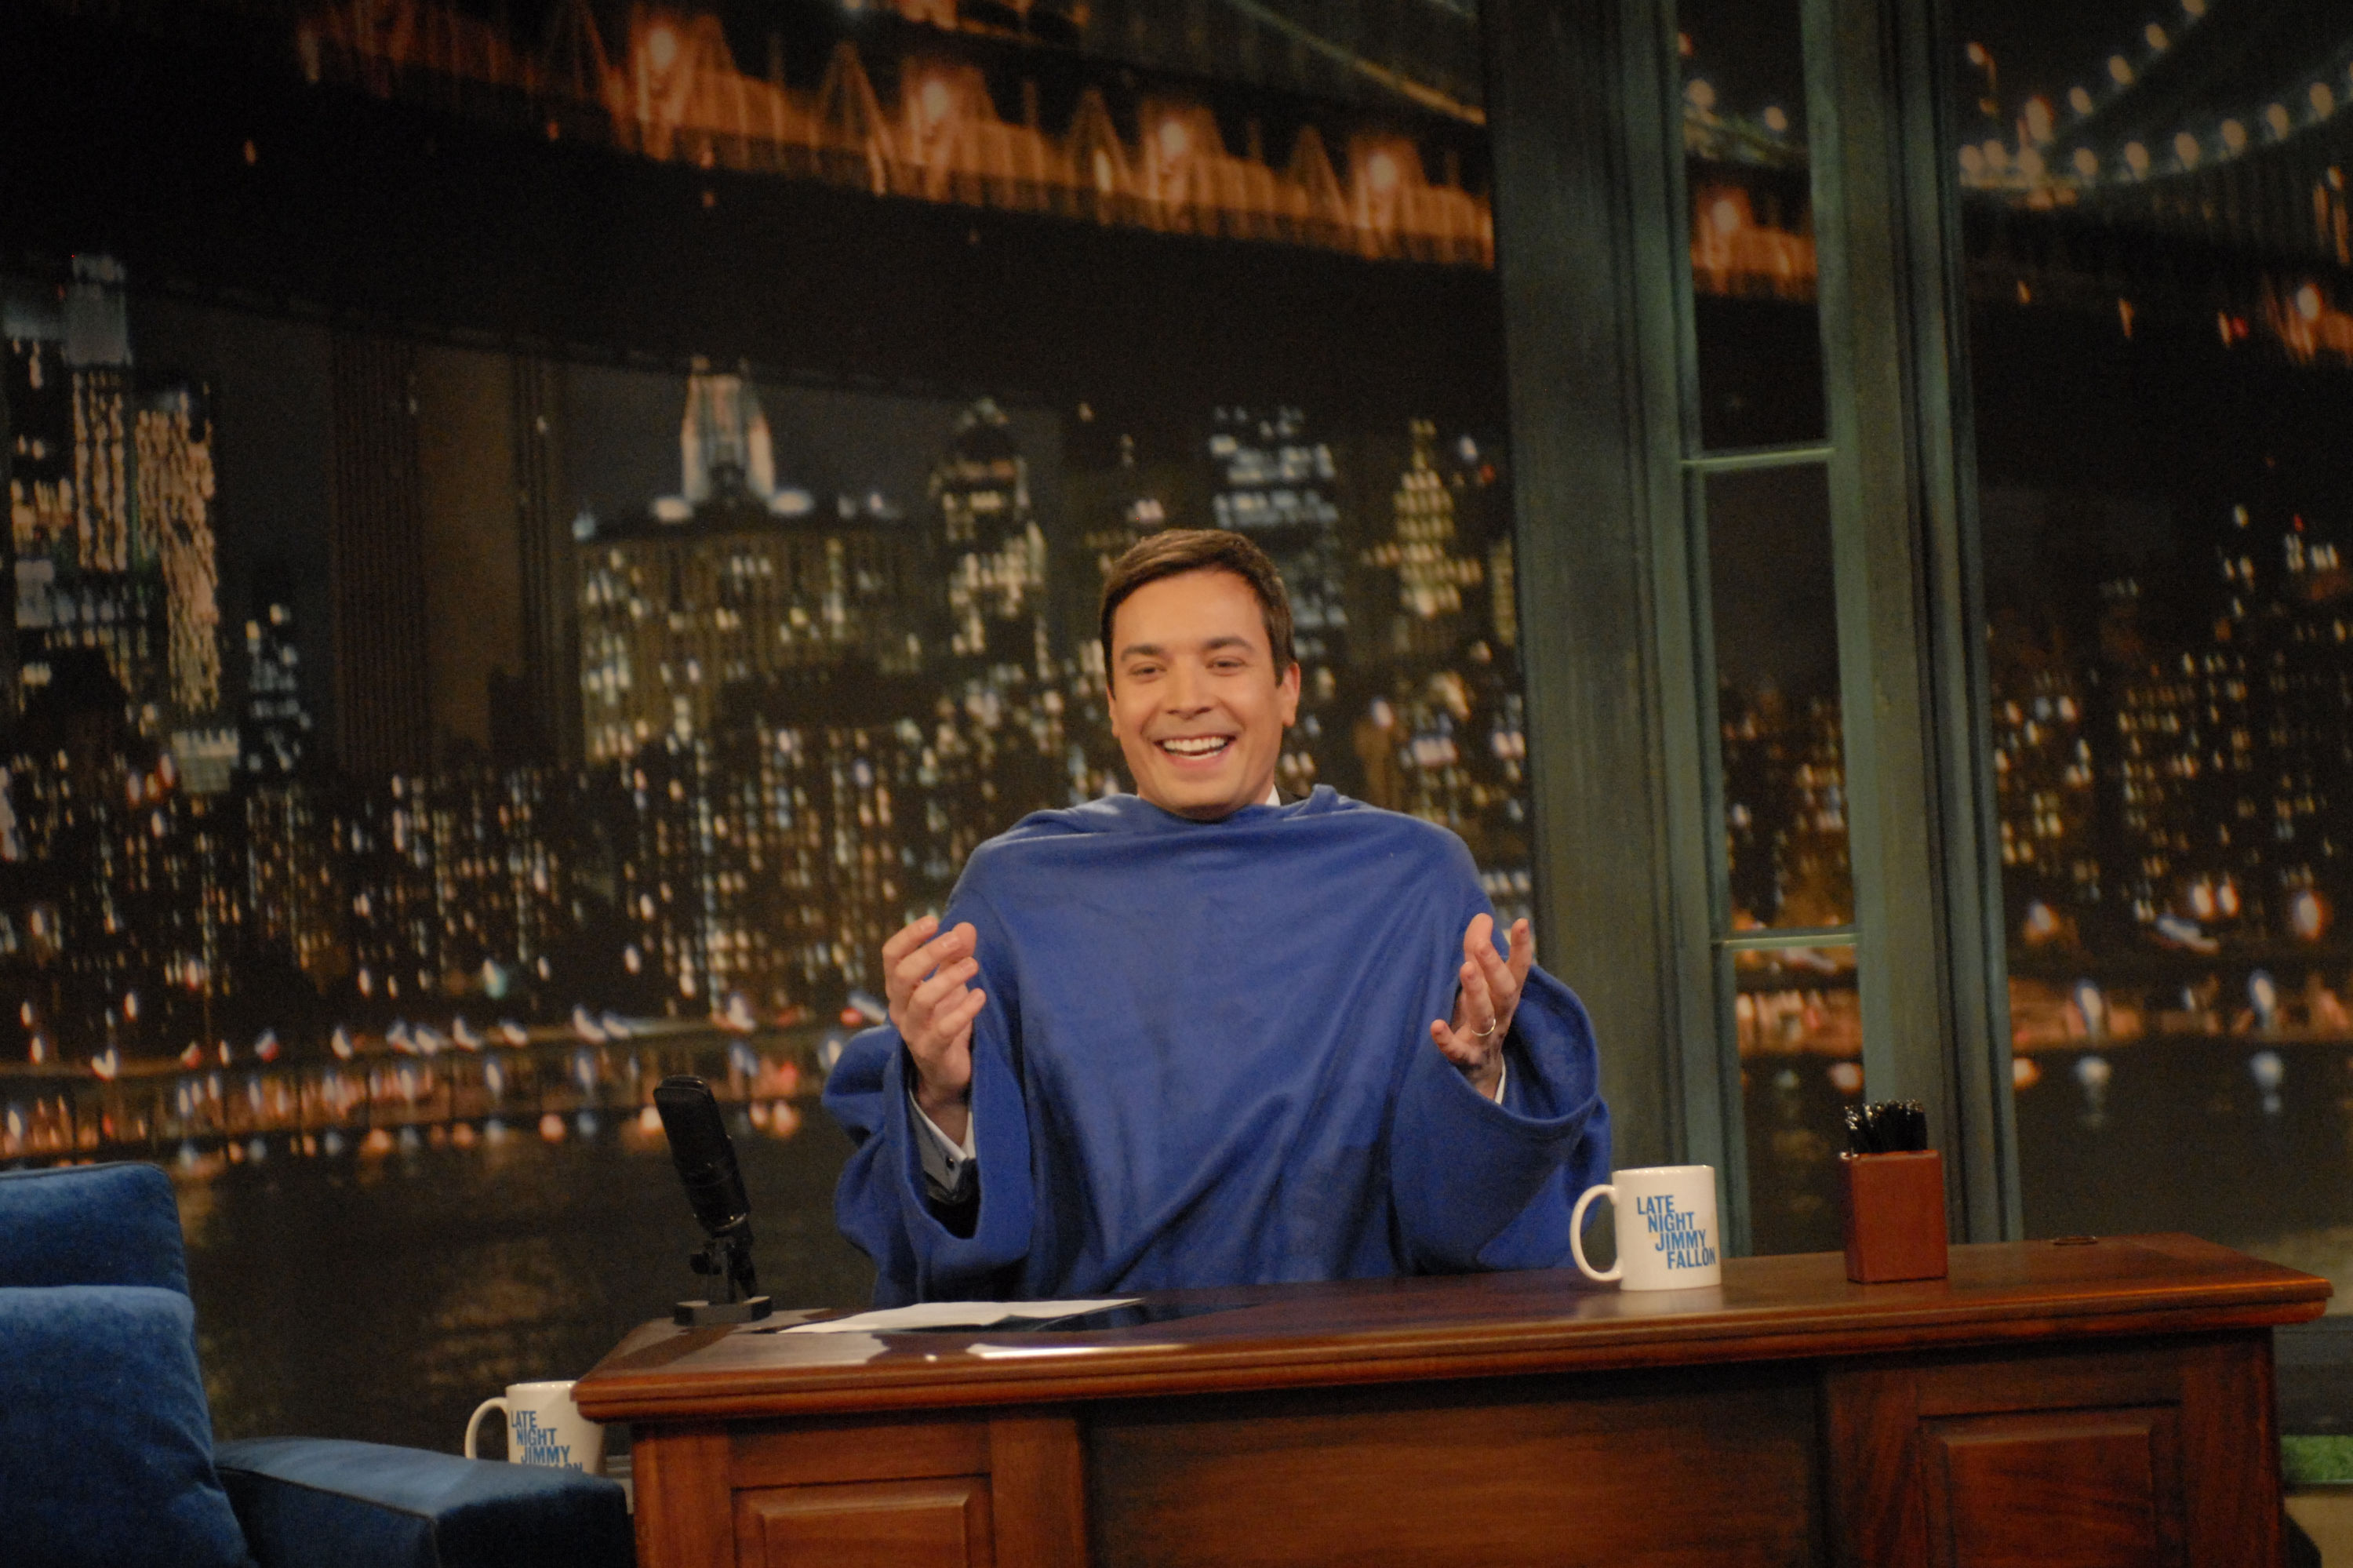 You May be Eligible for a Refund If You Bought a Snuggie in the Last 2 Decades